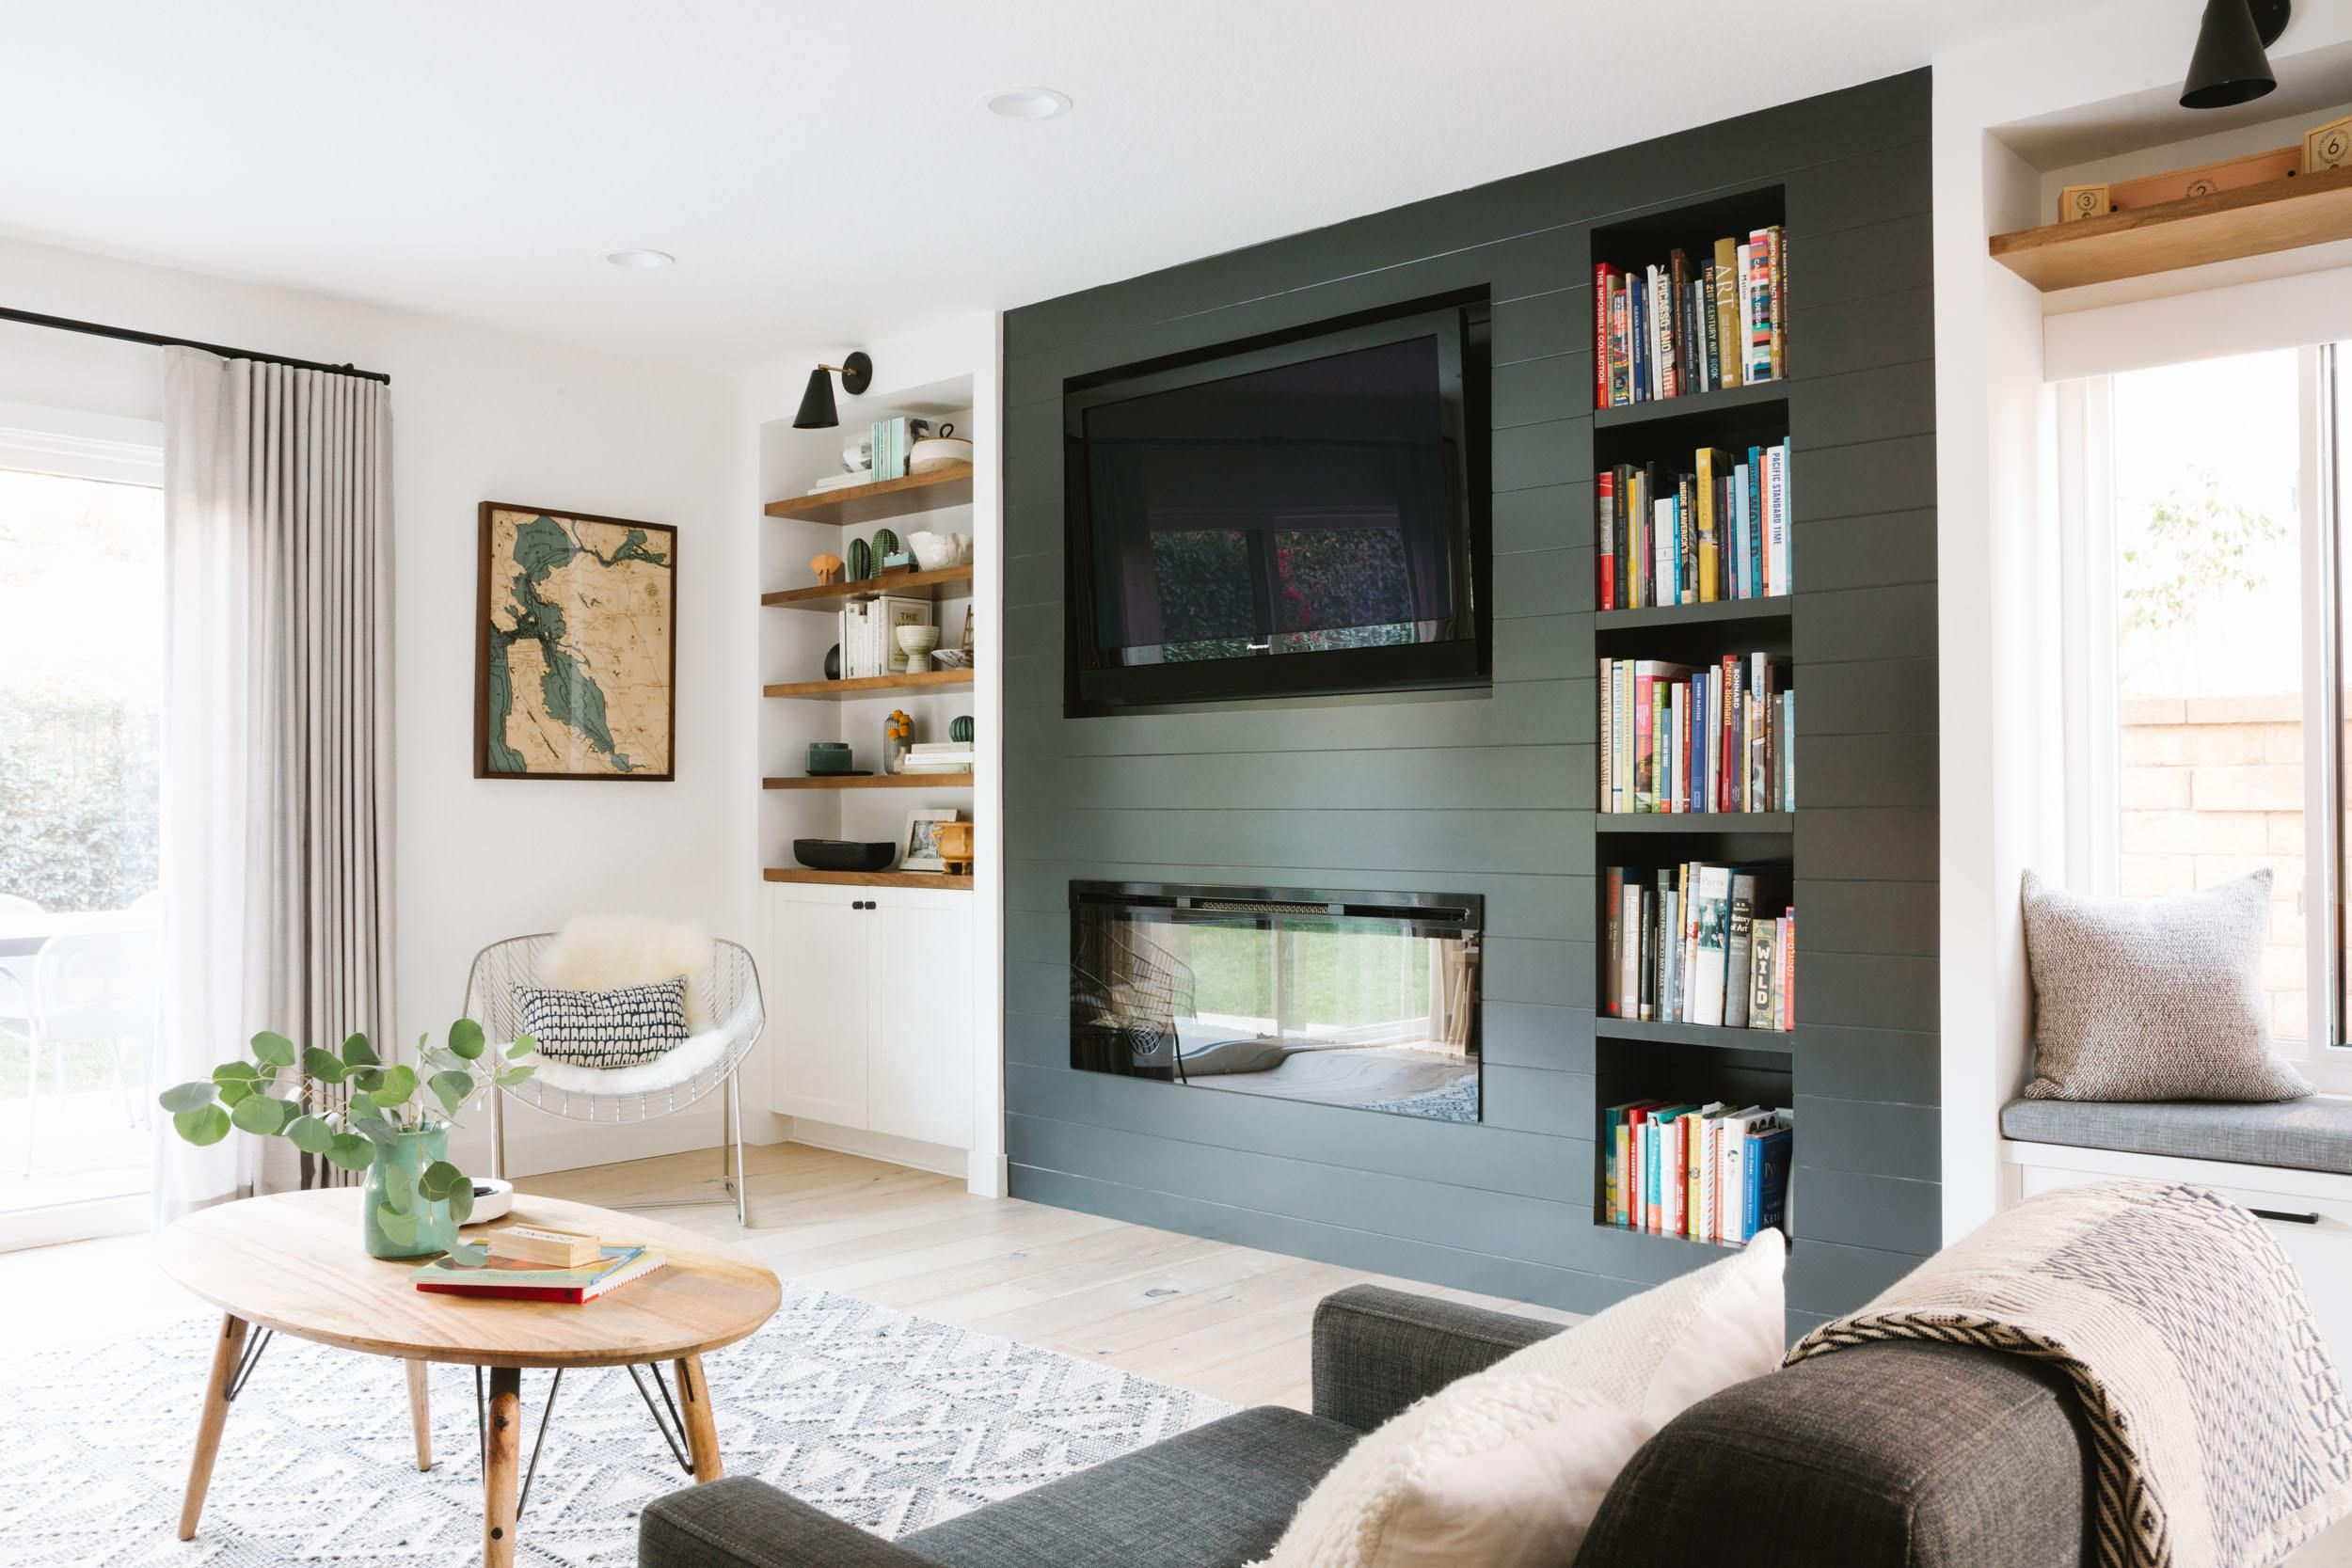 House Tour A Mid Century Modern Inspired Home Get The Look Emily Henderson Living Room With Fireplace Contemporary Home Decor Home #picture #of #living #room #with #fireplace